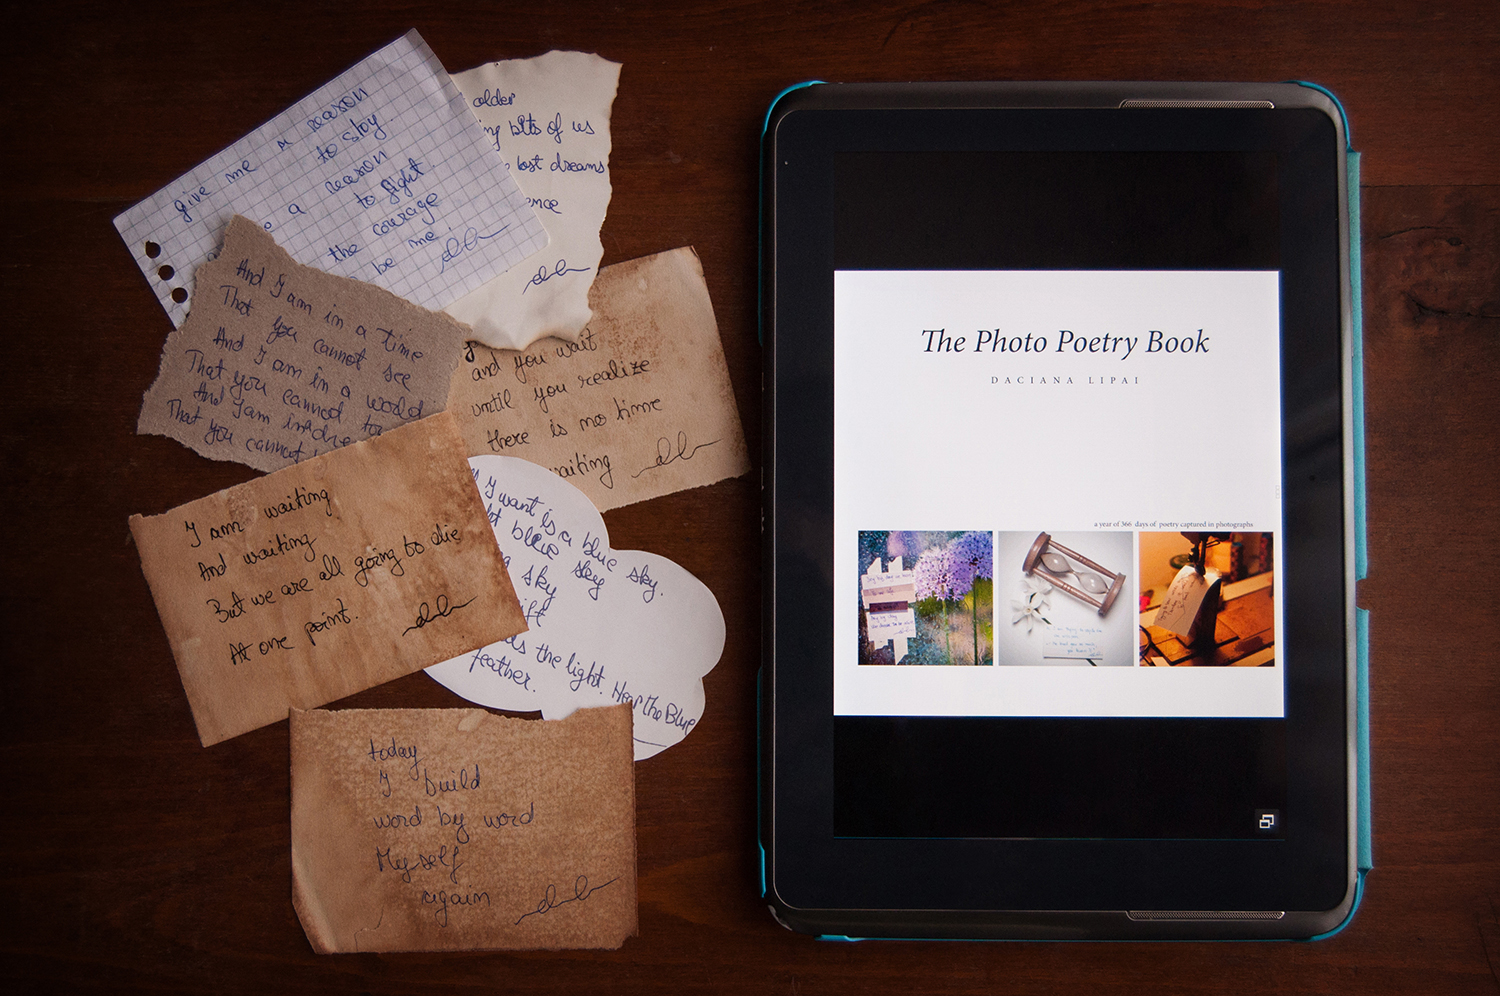 The Photo Poetry Book